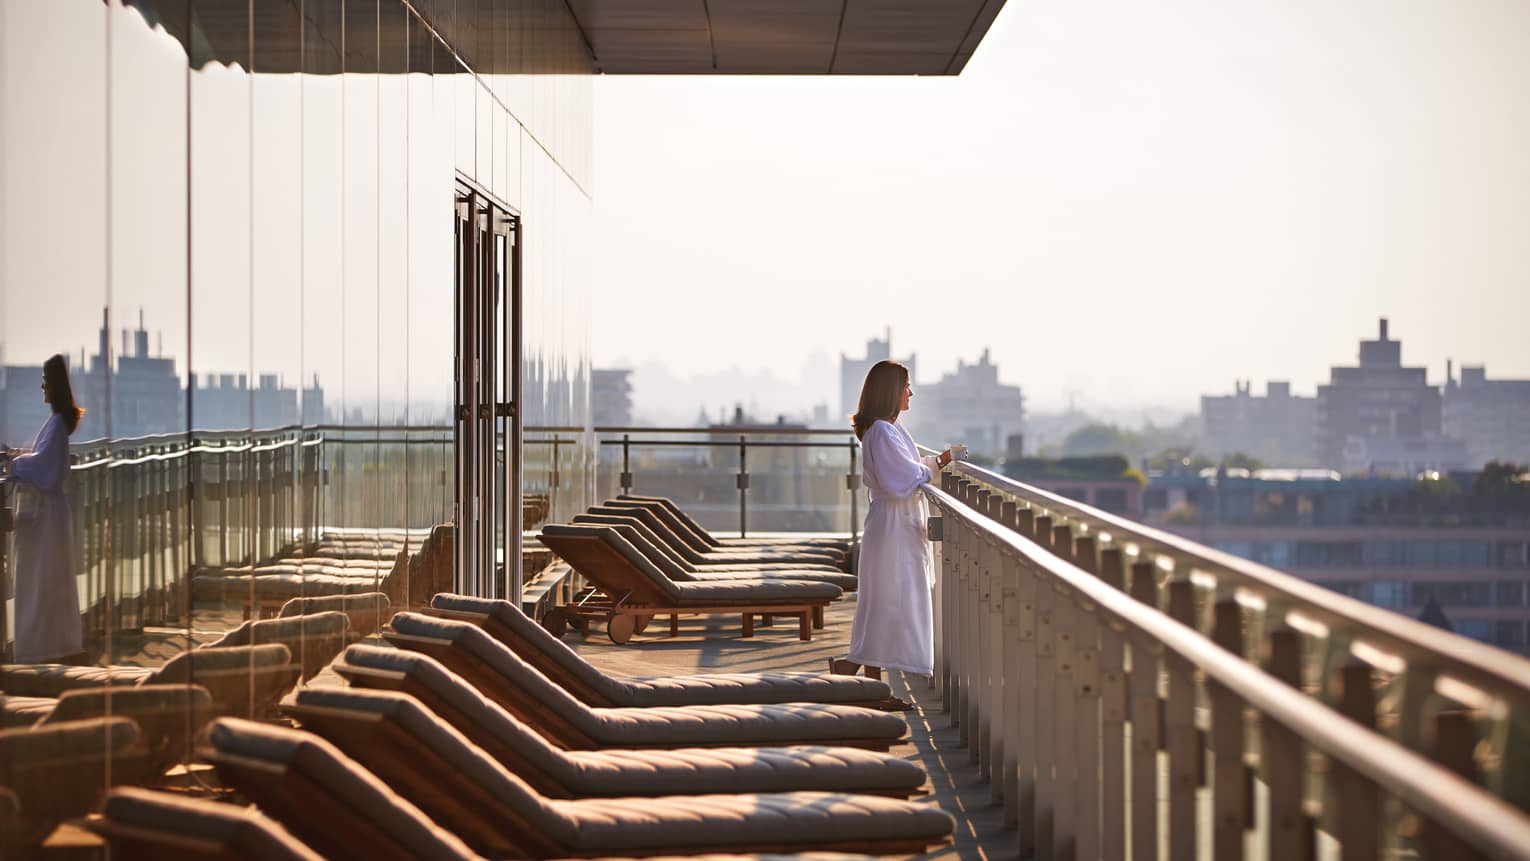 Woman in white bathrobe looks out over balcony ledge near row of spa patio chairs